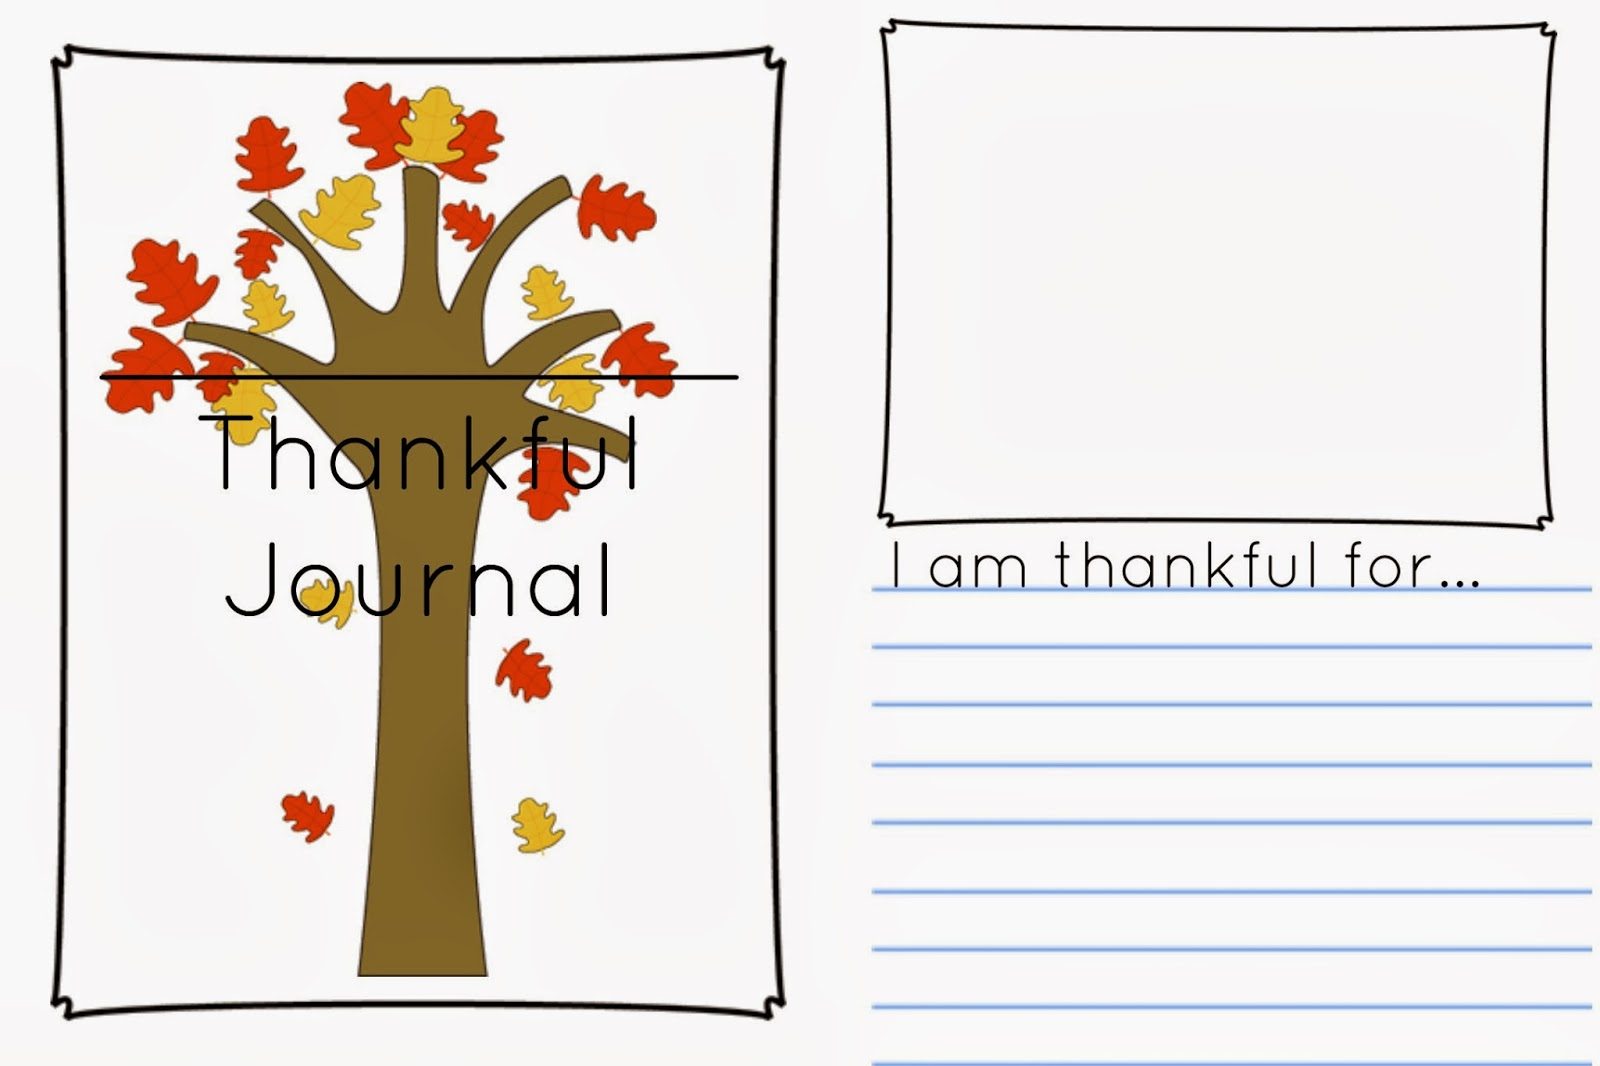 photo about Thankful Printable referred to as Grateful Magazine and Drawing Proposed Totally free Printable